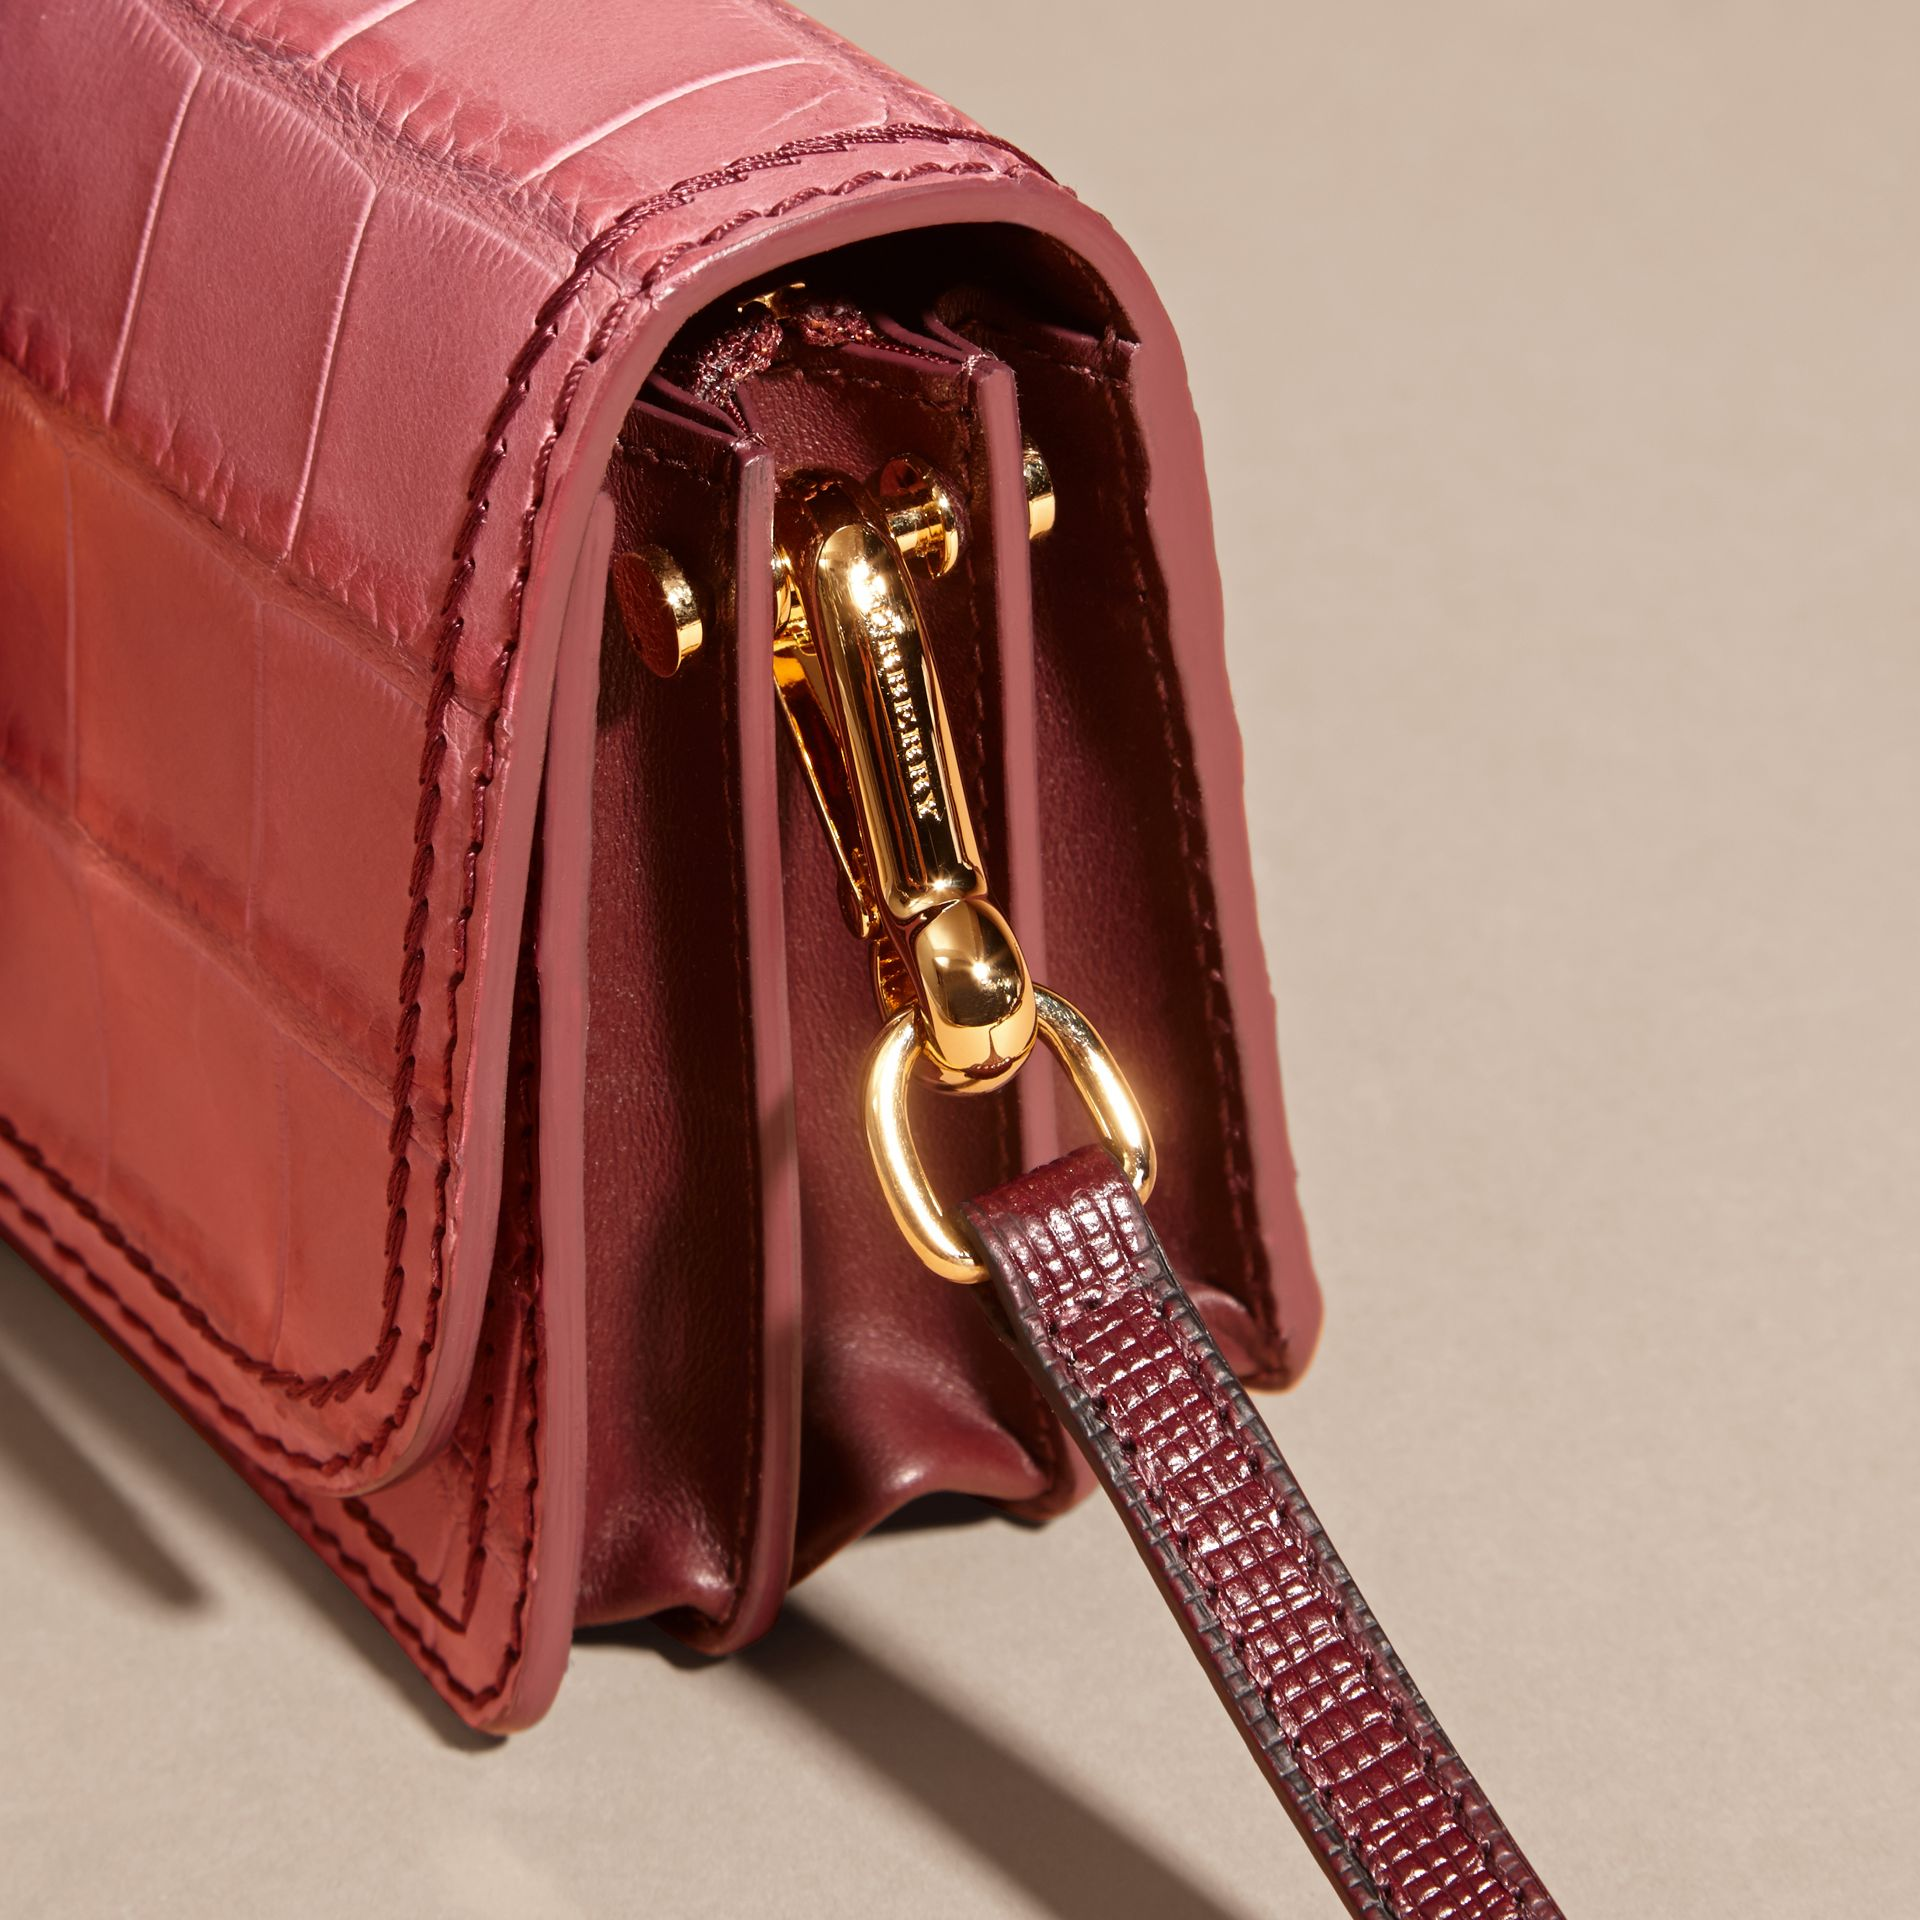 Dusky pink/ burgundy The Small Buckle Bag in Alligator and Leather Dusky Pink/ Burgundy - gallery image 2